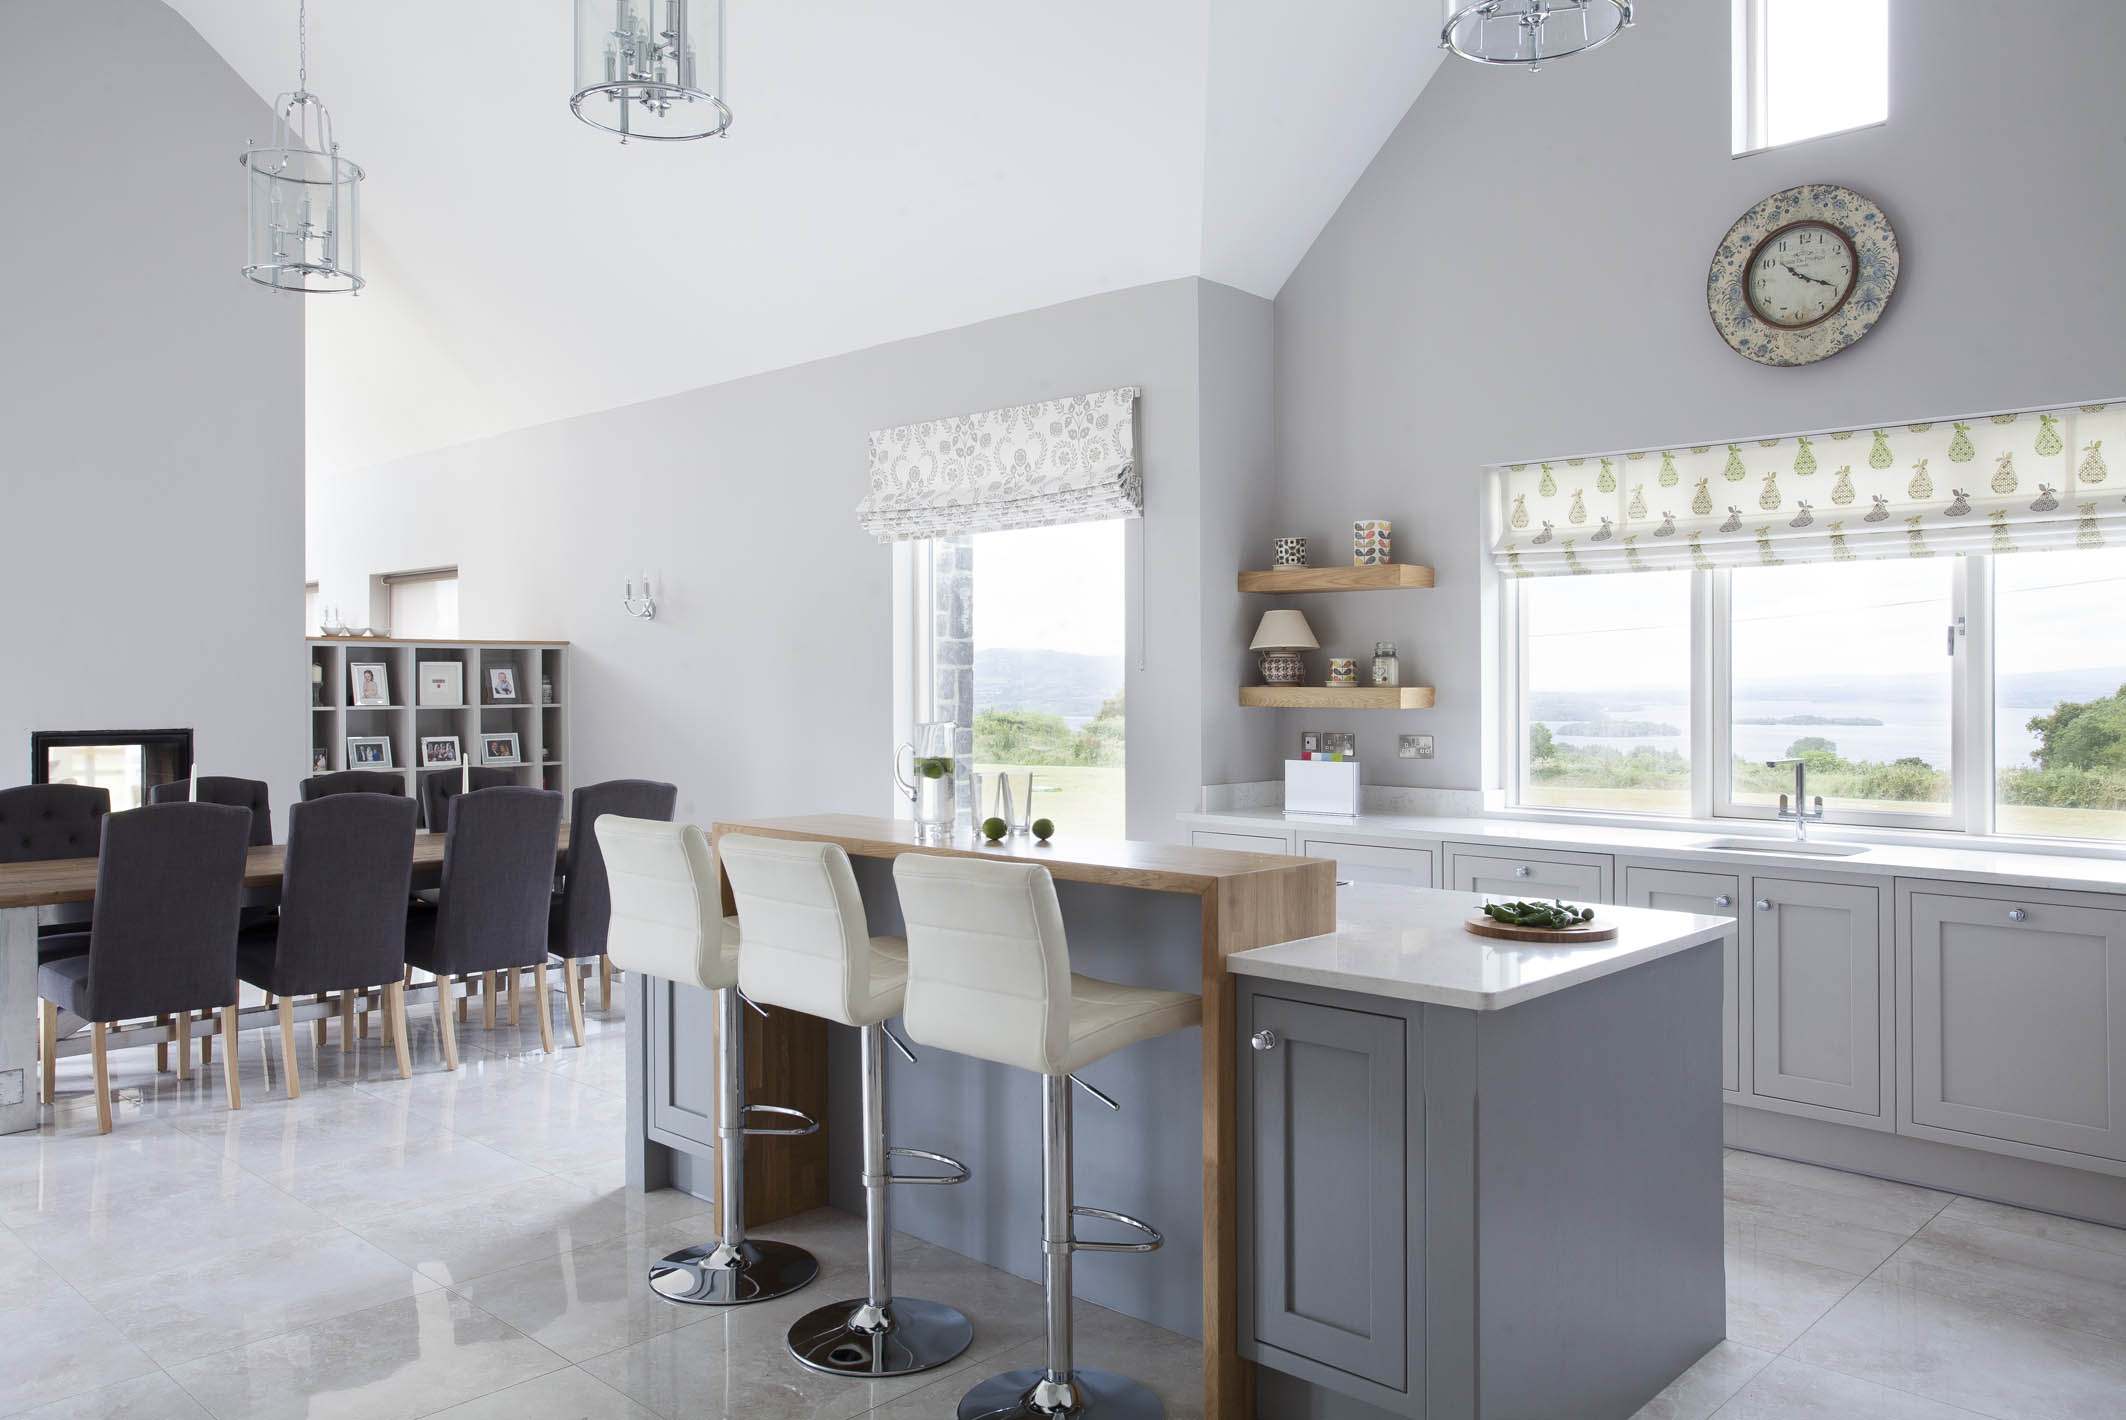 Classic style inframe painted white and grey kitchen, Tipperary